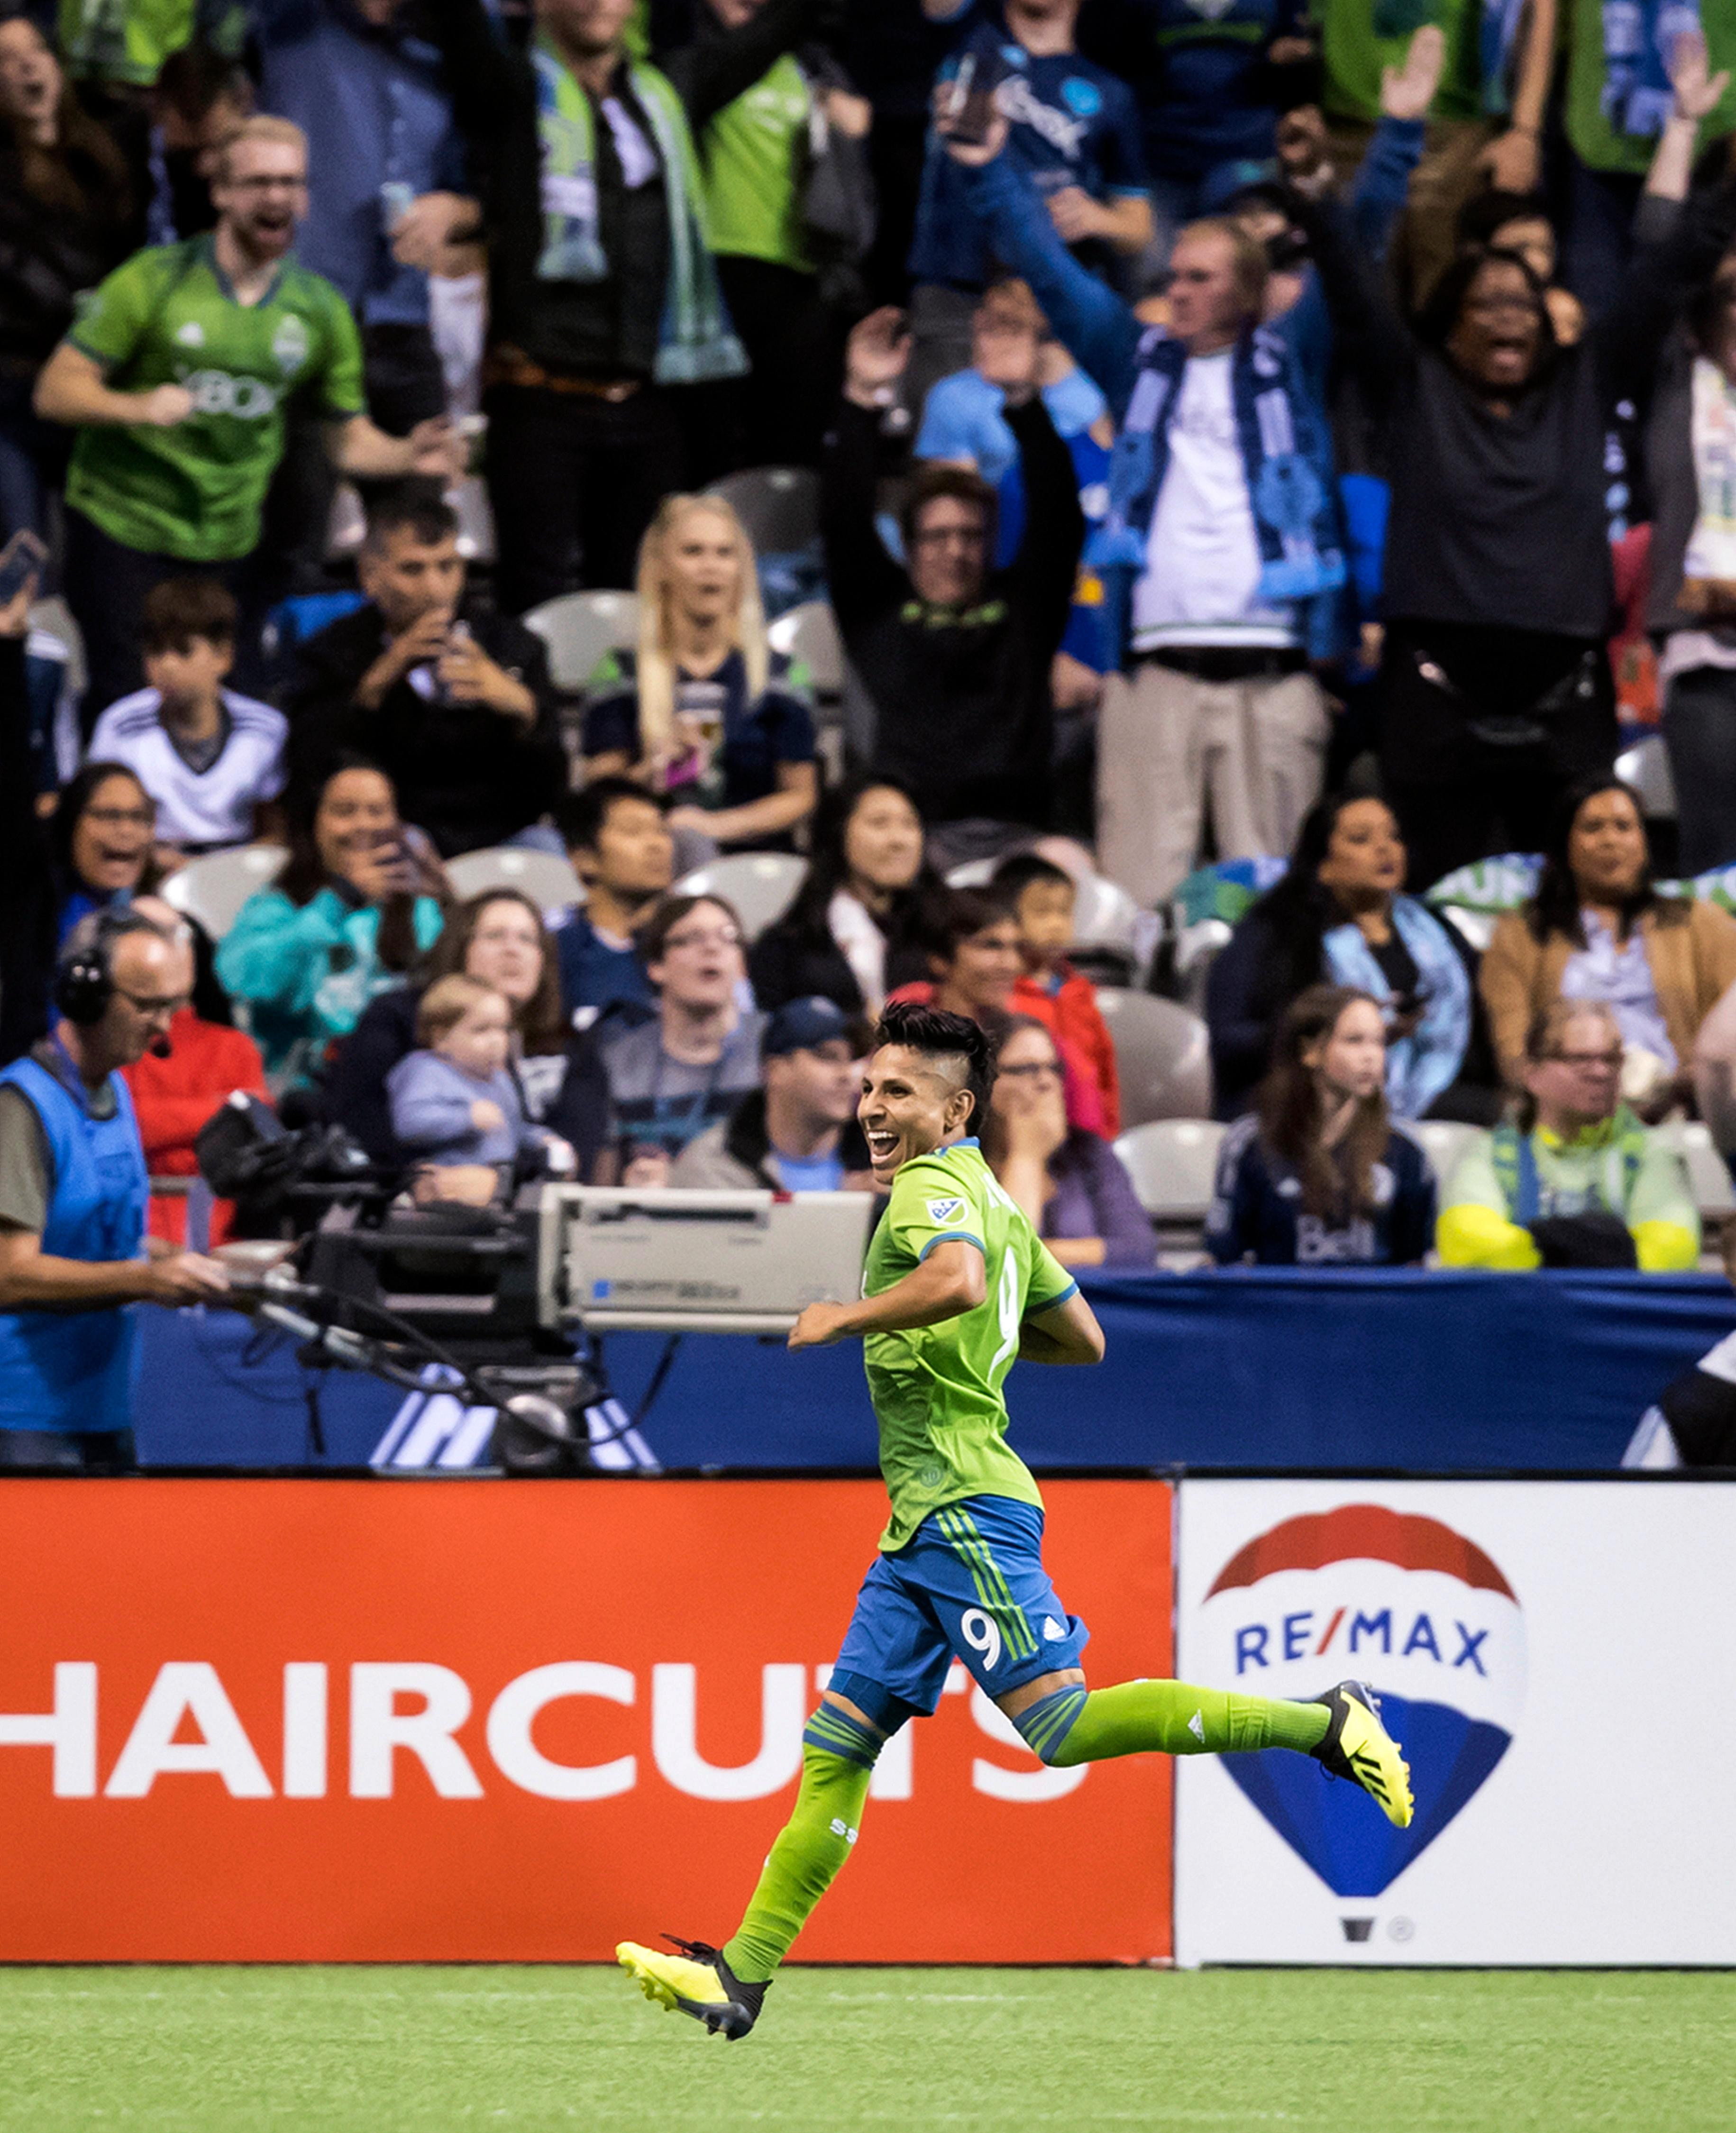 Seattle Sounders' Raul Ruidiaz celebrates his second goal against the Vancouver Whitecaps during the first half of an MLS soccer match, Saturday, Sept. 15, 2018, in Vancouver, British Columbia. (Darryl Dyck/The Canadian Press via AP)